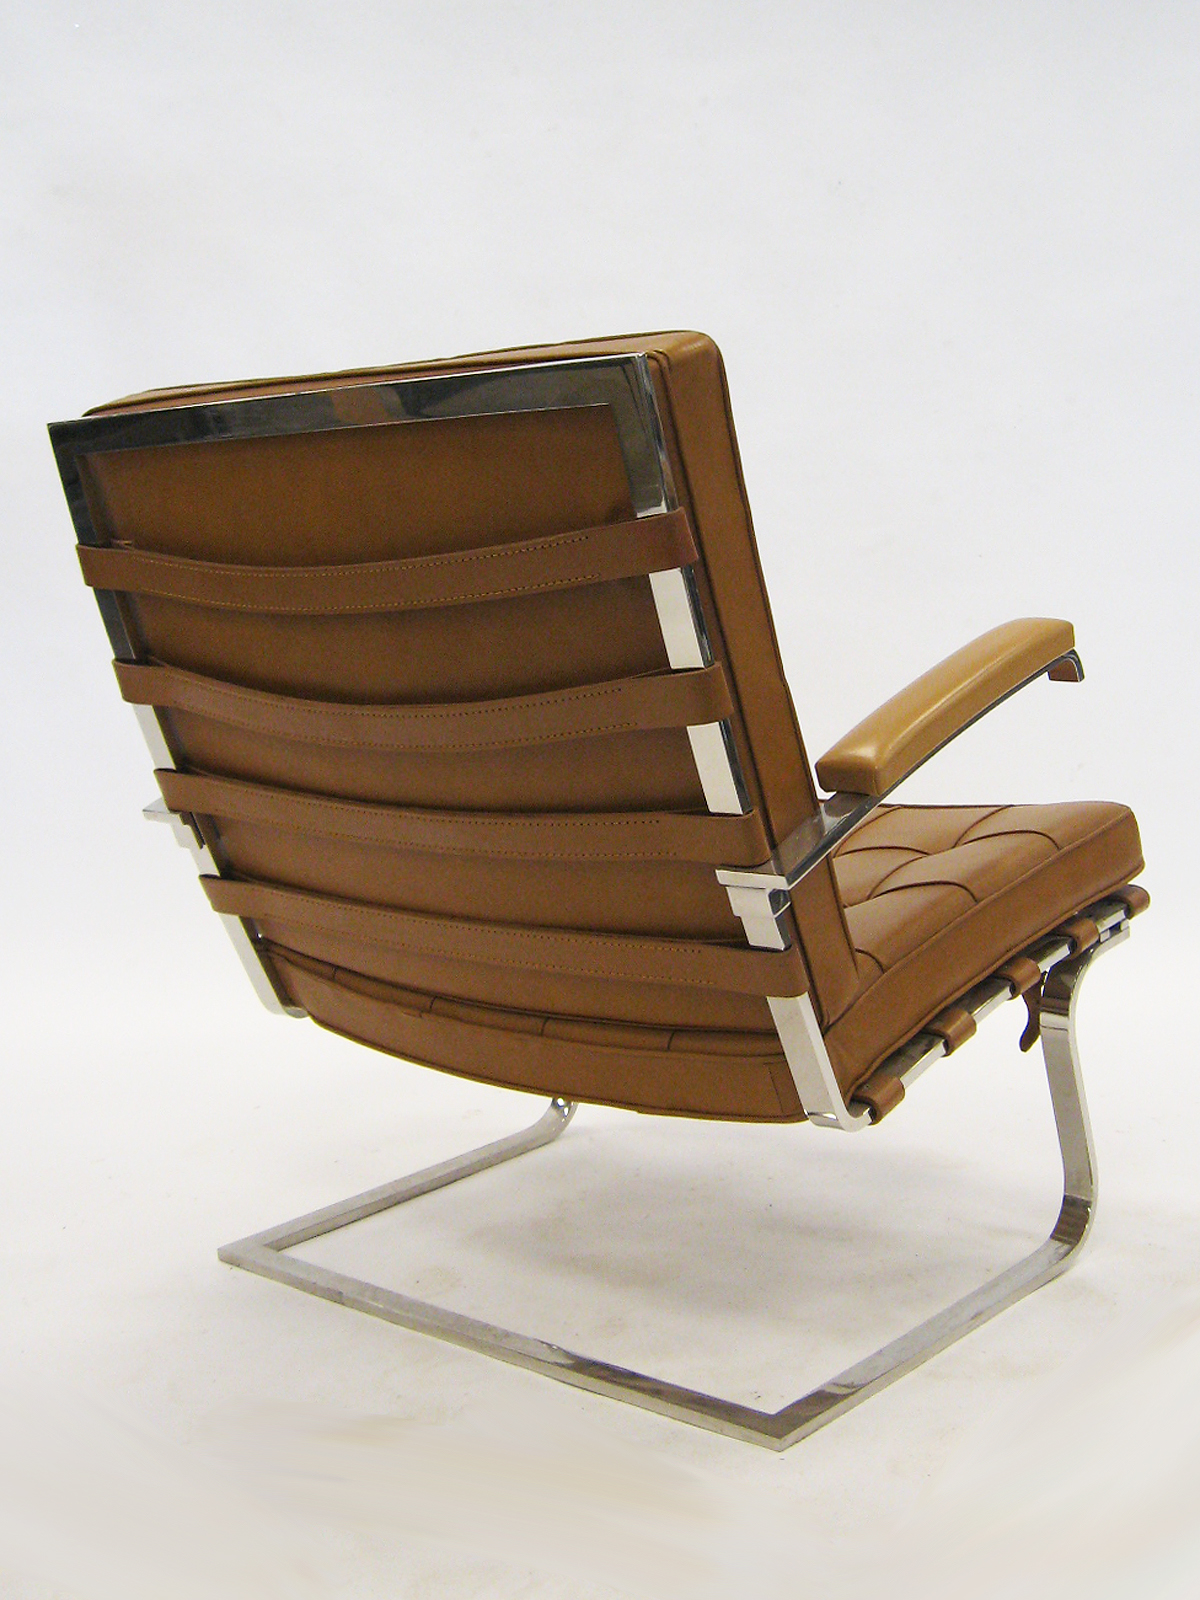 Mies Tugenhadt Lounge Chair by Knoll